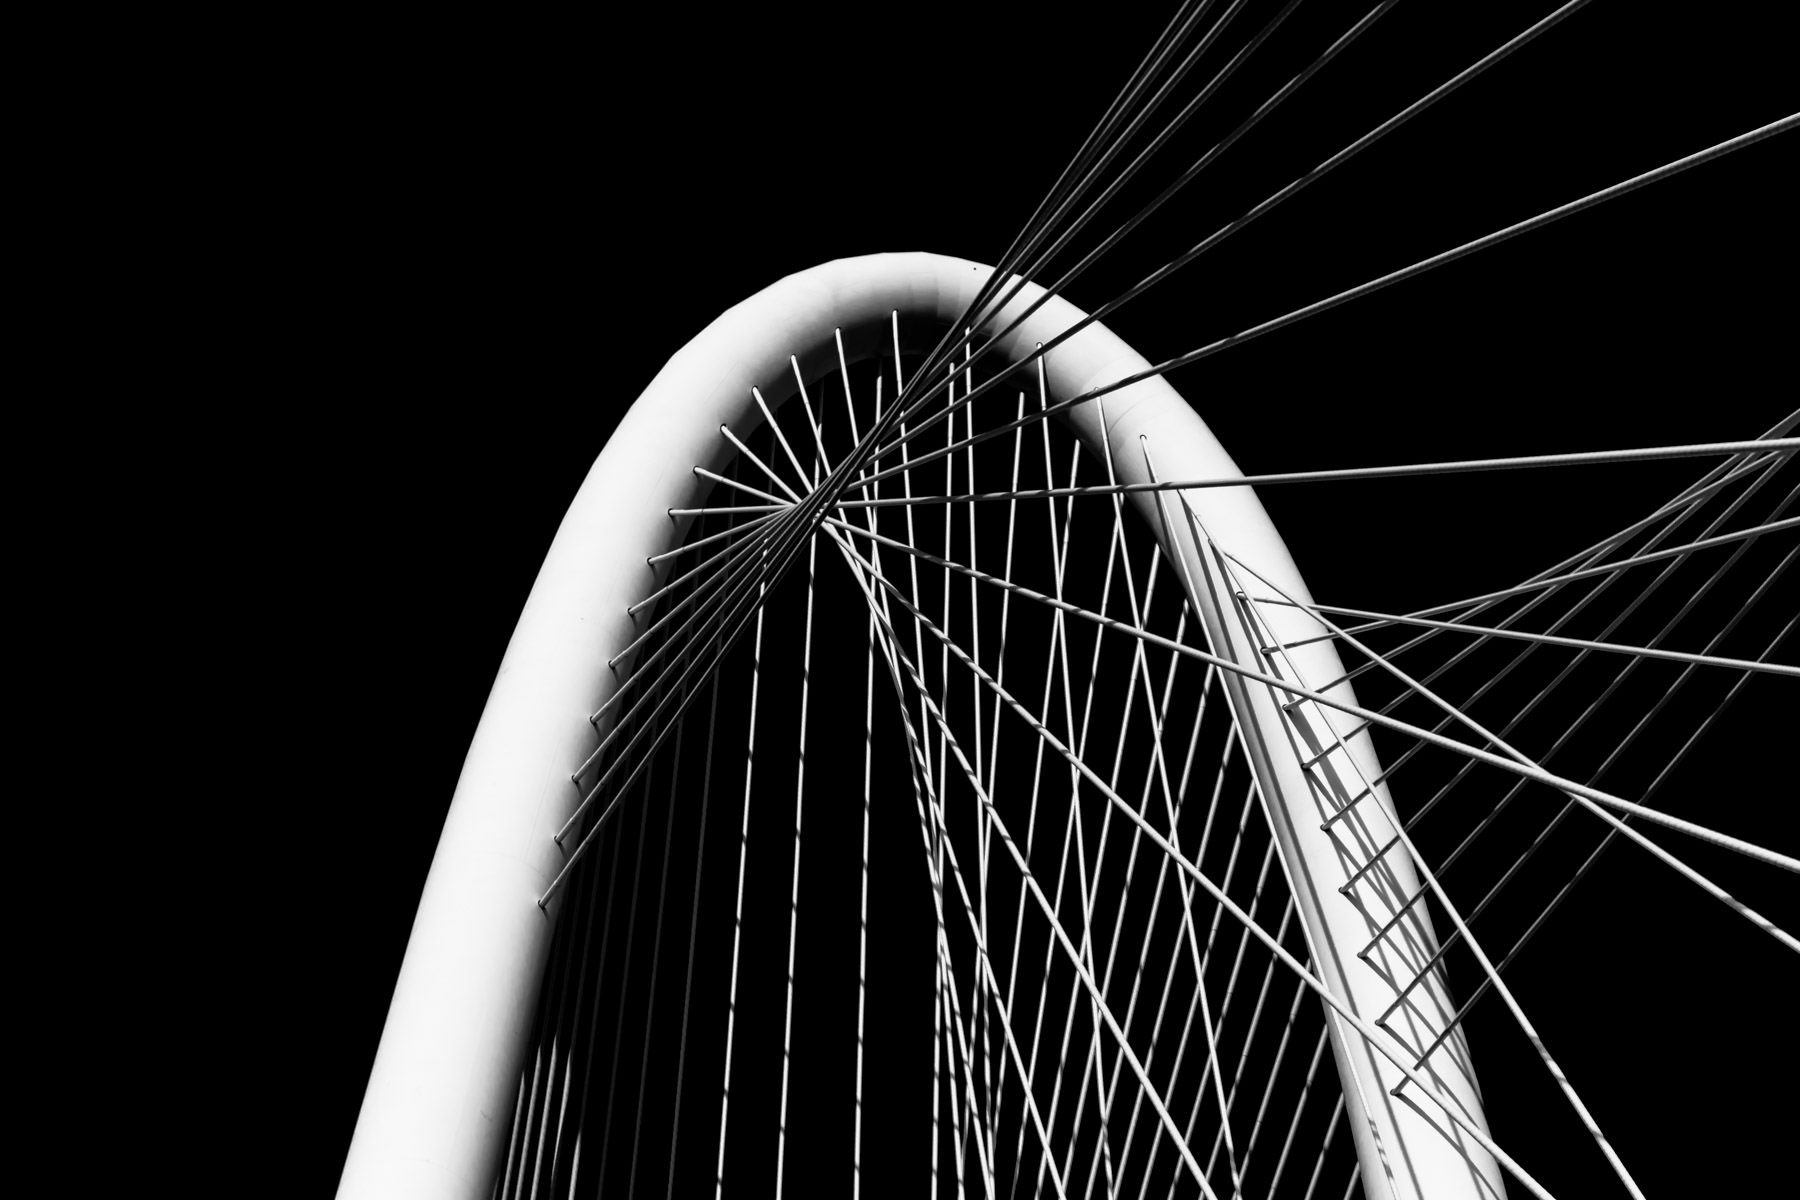 An abstract view of the arch and cables of the Santiago Calatrava-designed Margaret Hunt Hill Bridge in Dallas.